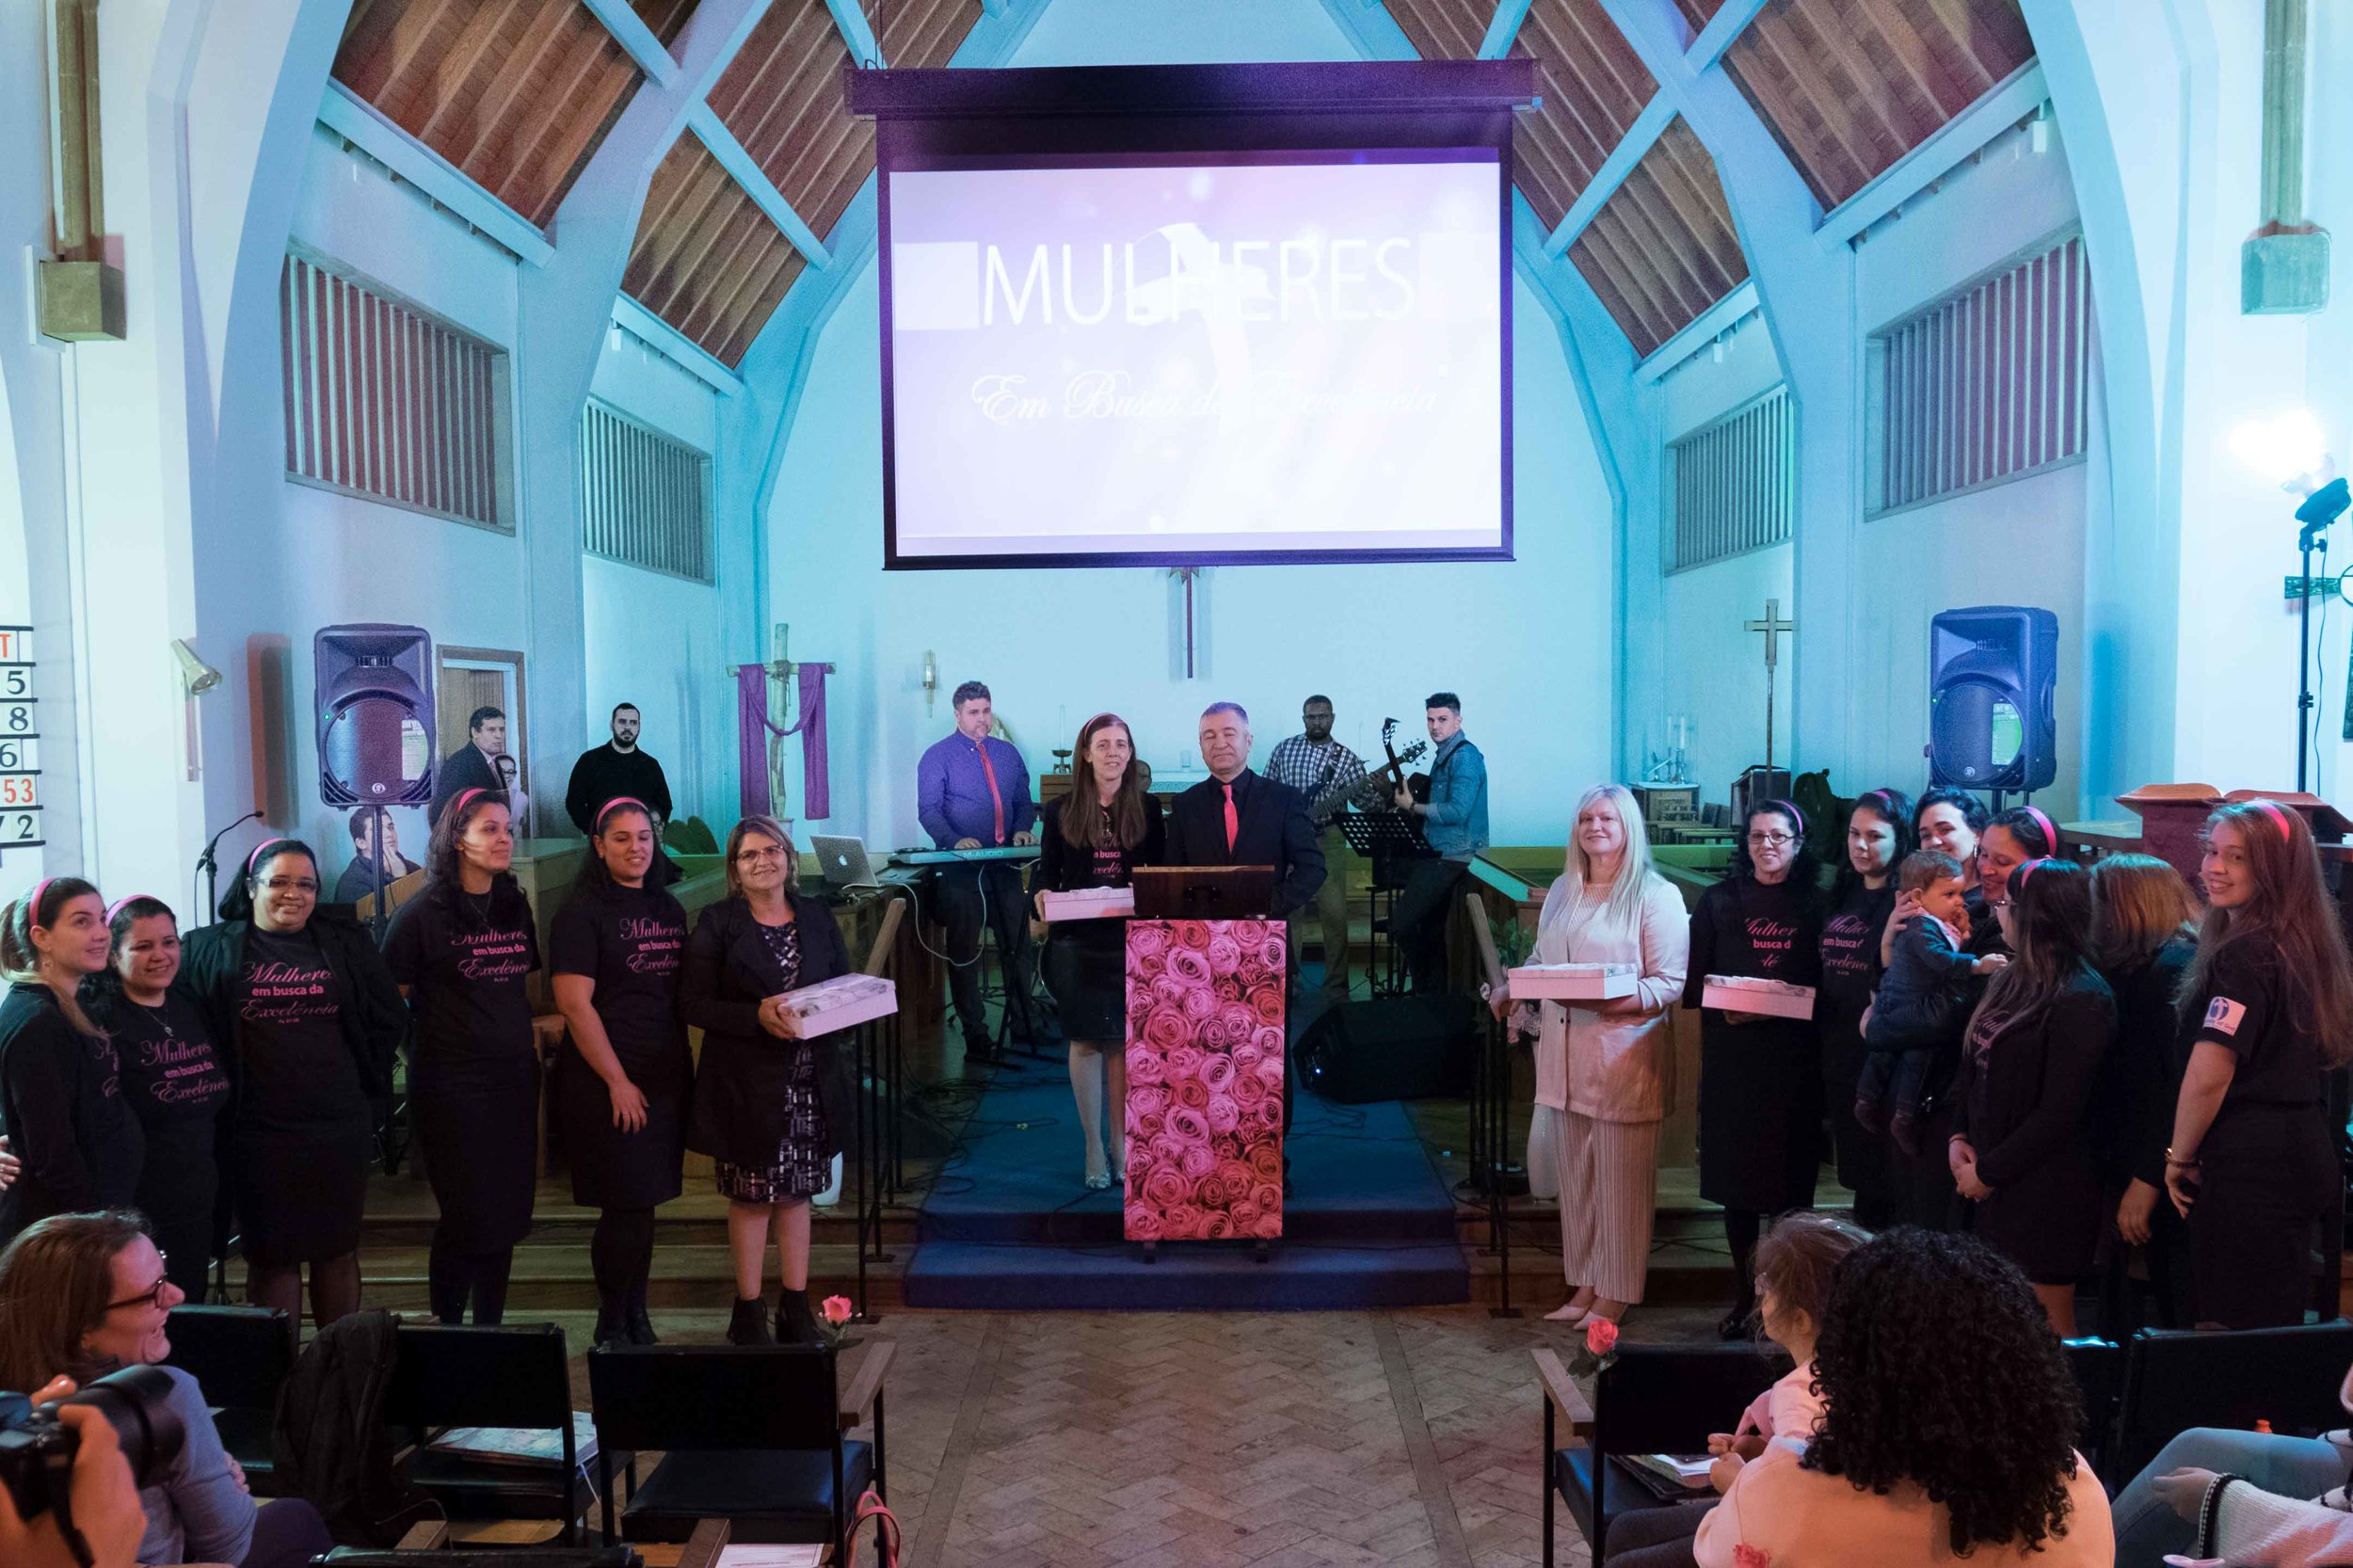 Joint service with the Portuguese Church at their Bognor Regis Church, 2017